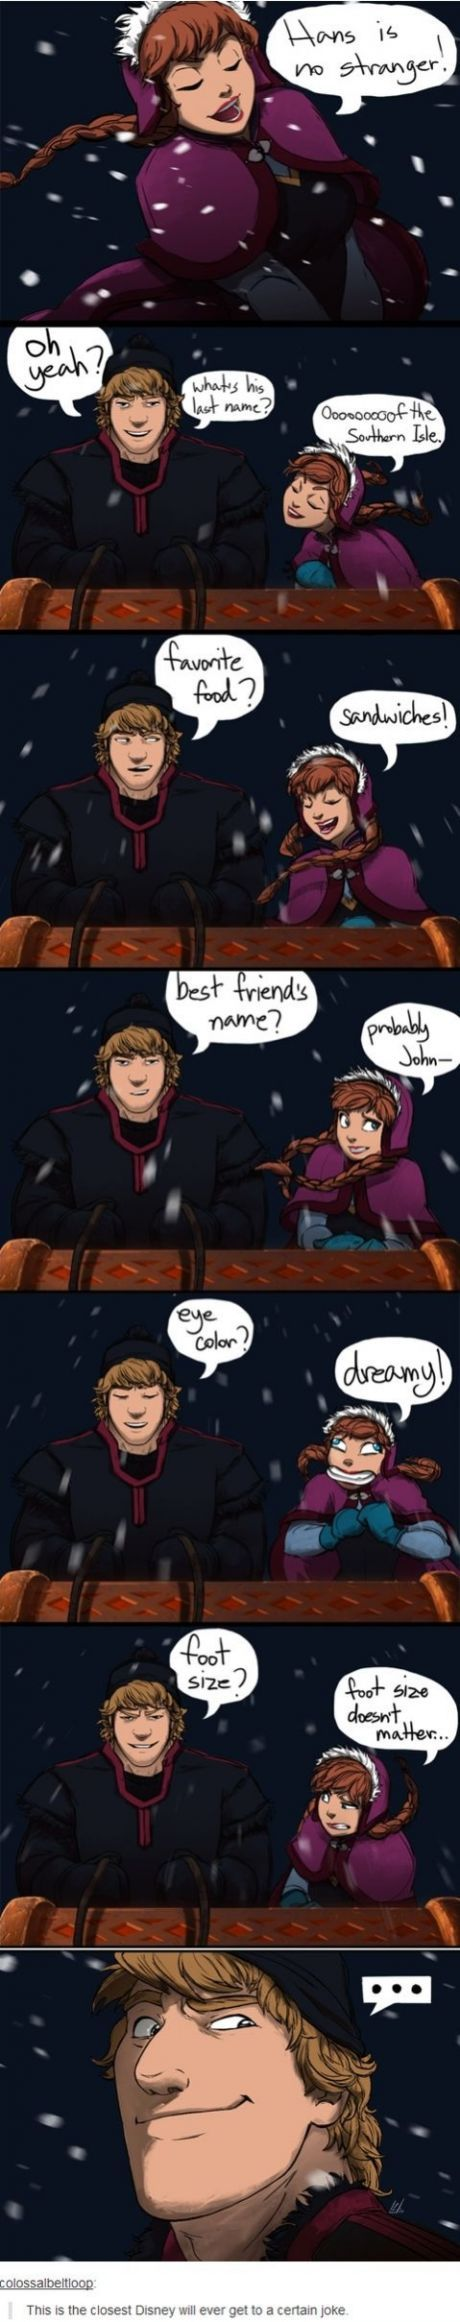 Get a cruise  for half price or even for free!❤❤❤ Real deal! CLICK for more details. Oh.....OH. Thanks Kristoff. [Frozen]